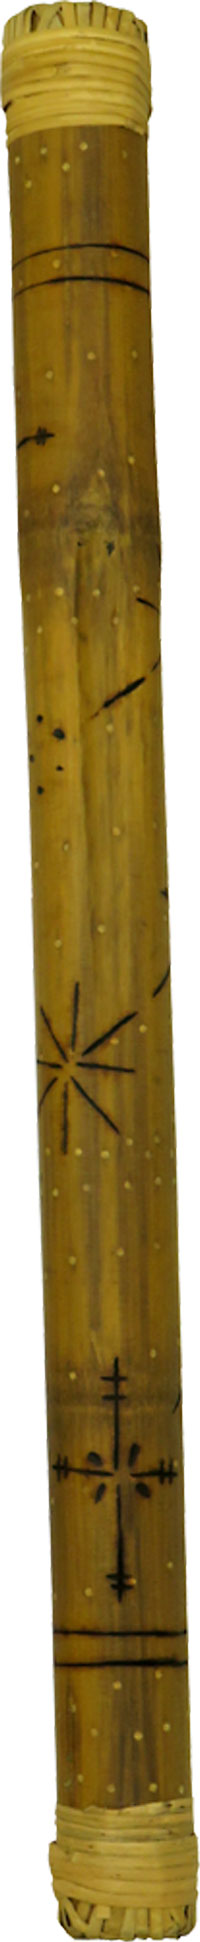 Atlas Bamboo Rainstick, 75cm Long Pokerwork designs. Approx 75cm long and 5cm diameter